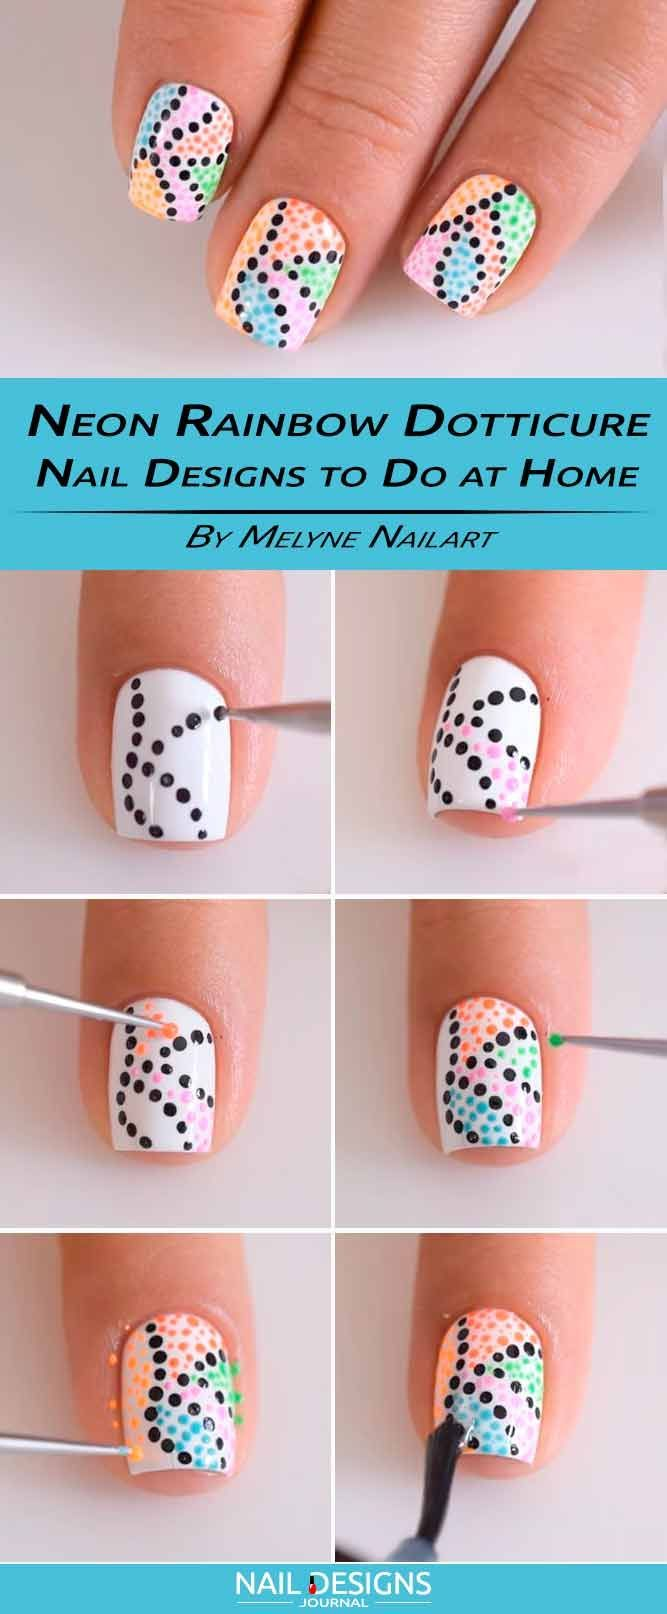 20 Super Easy Diy Nails Designs Every Girl Should Know Nails